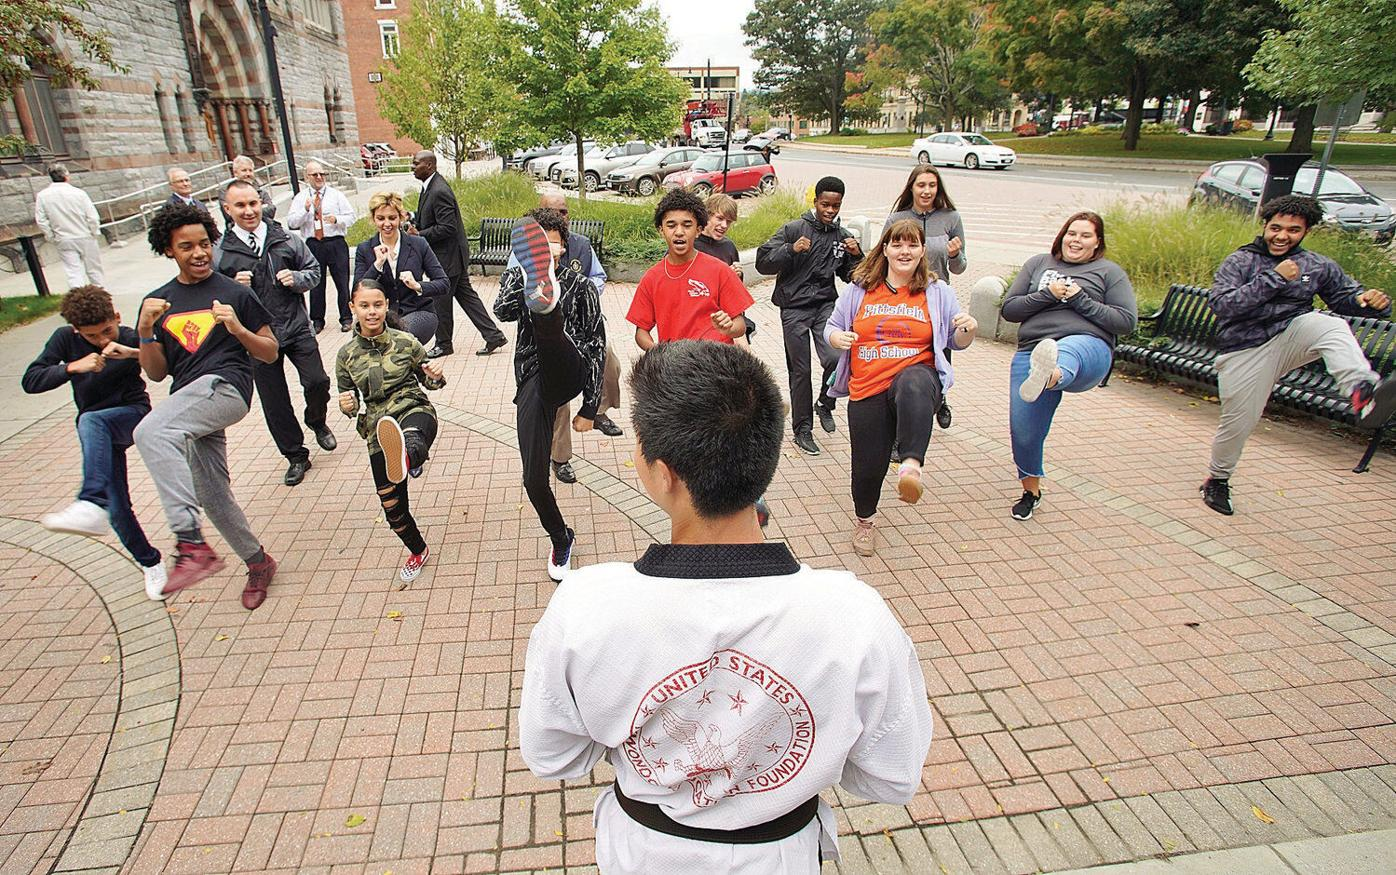 In Pittsfield, Diversity fest lets court system 'lean into difficult conversations'